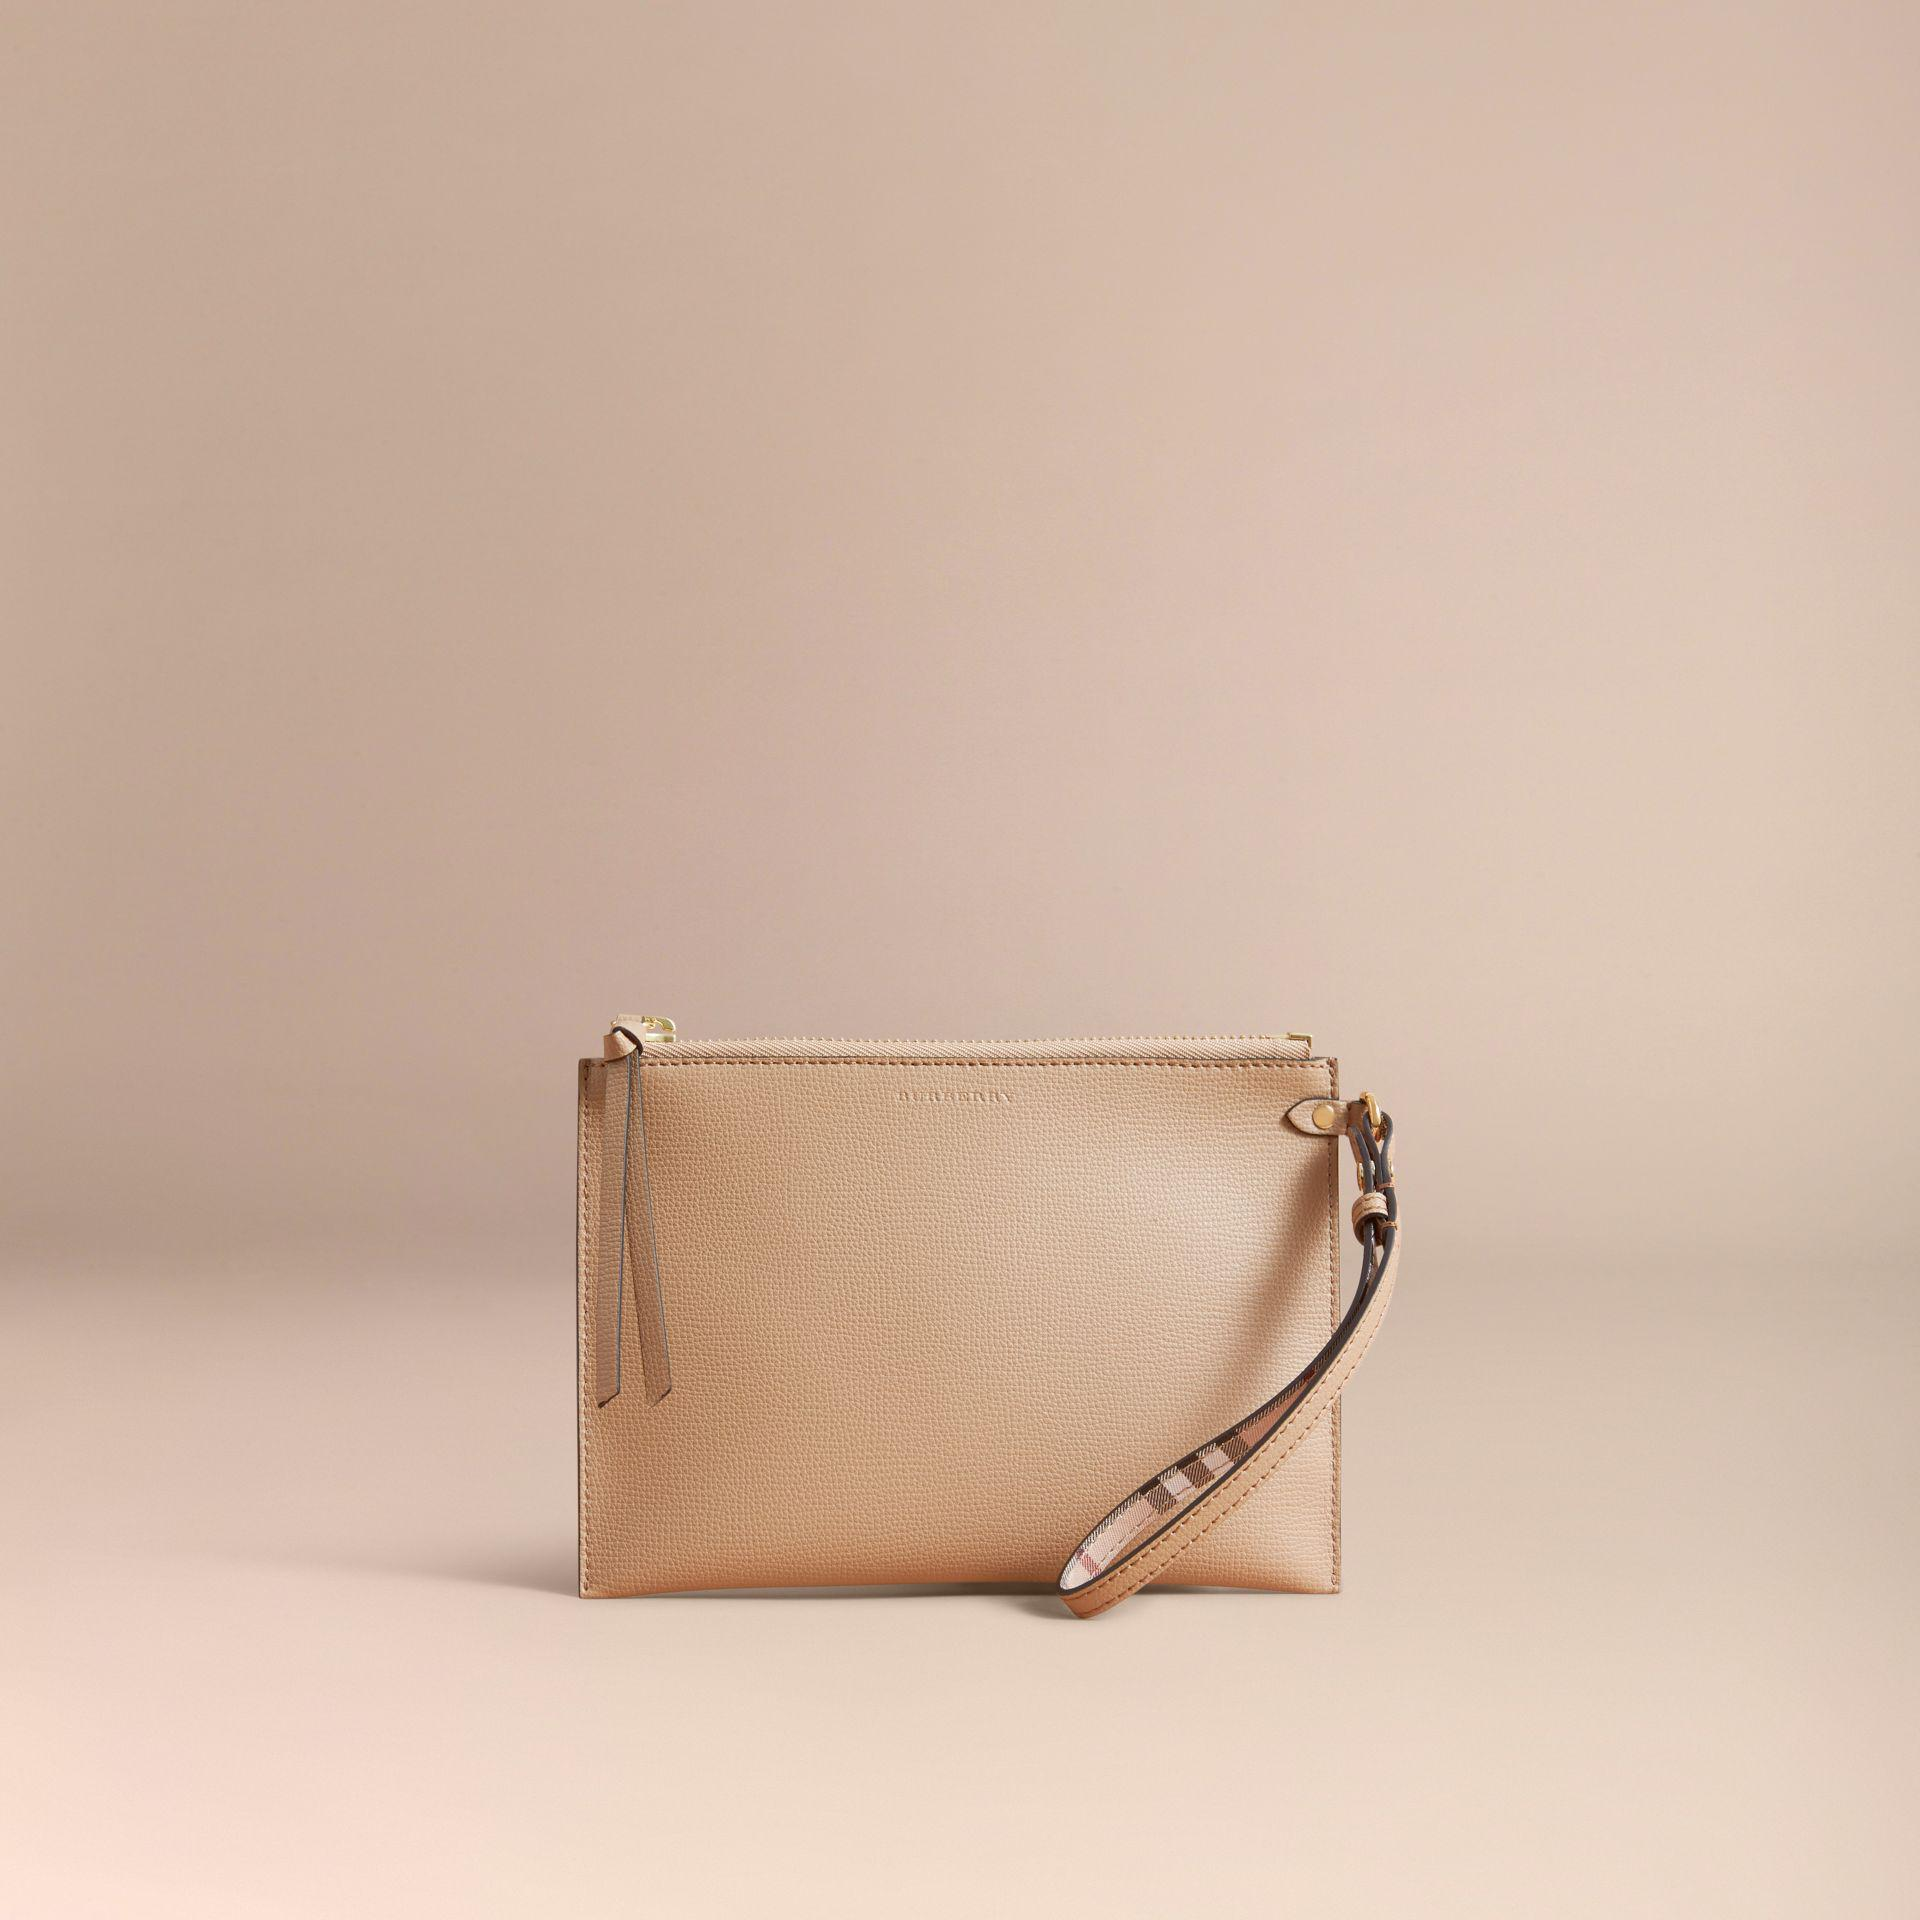 76e28e0966aa Lyst - Burberry Haymarket Check And Leather Clutch Bag in Natural